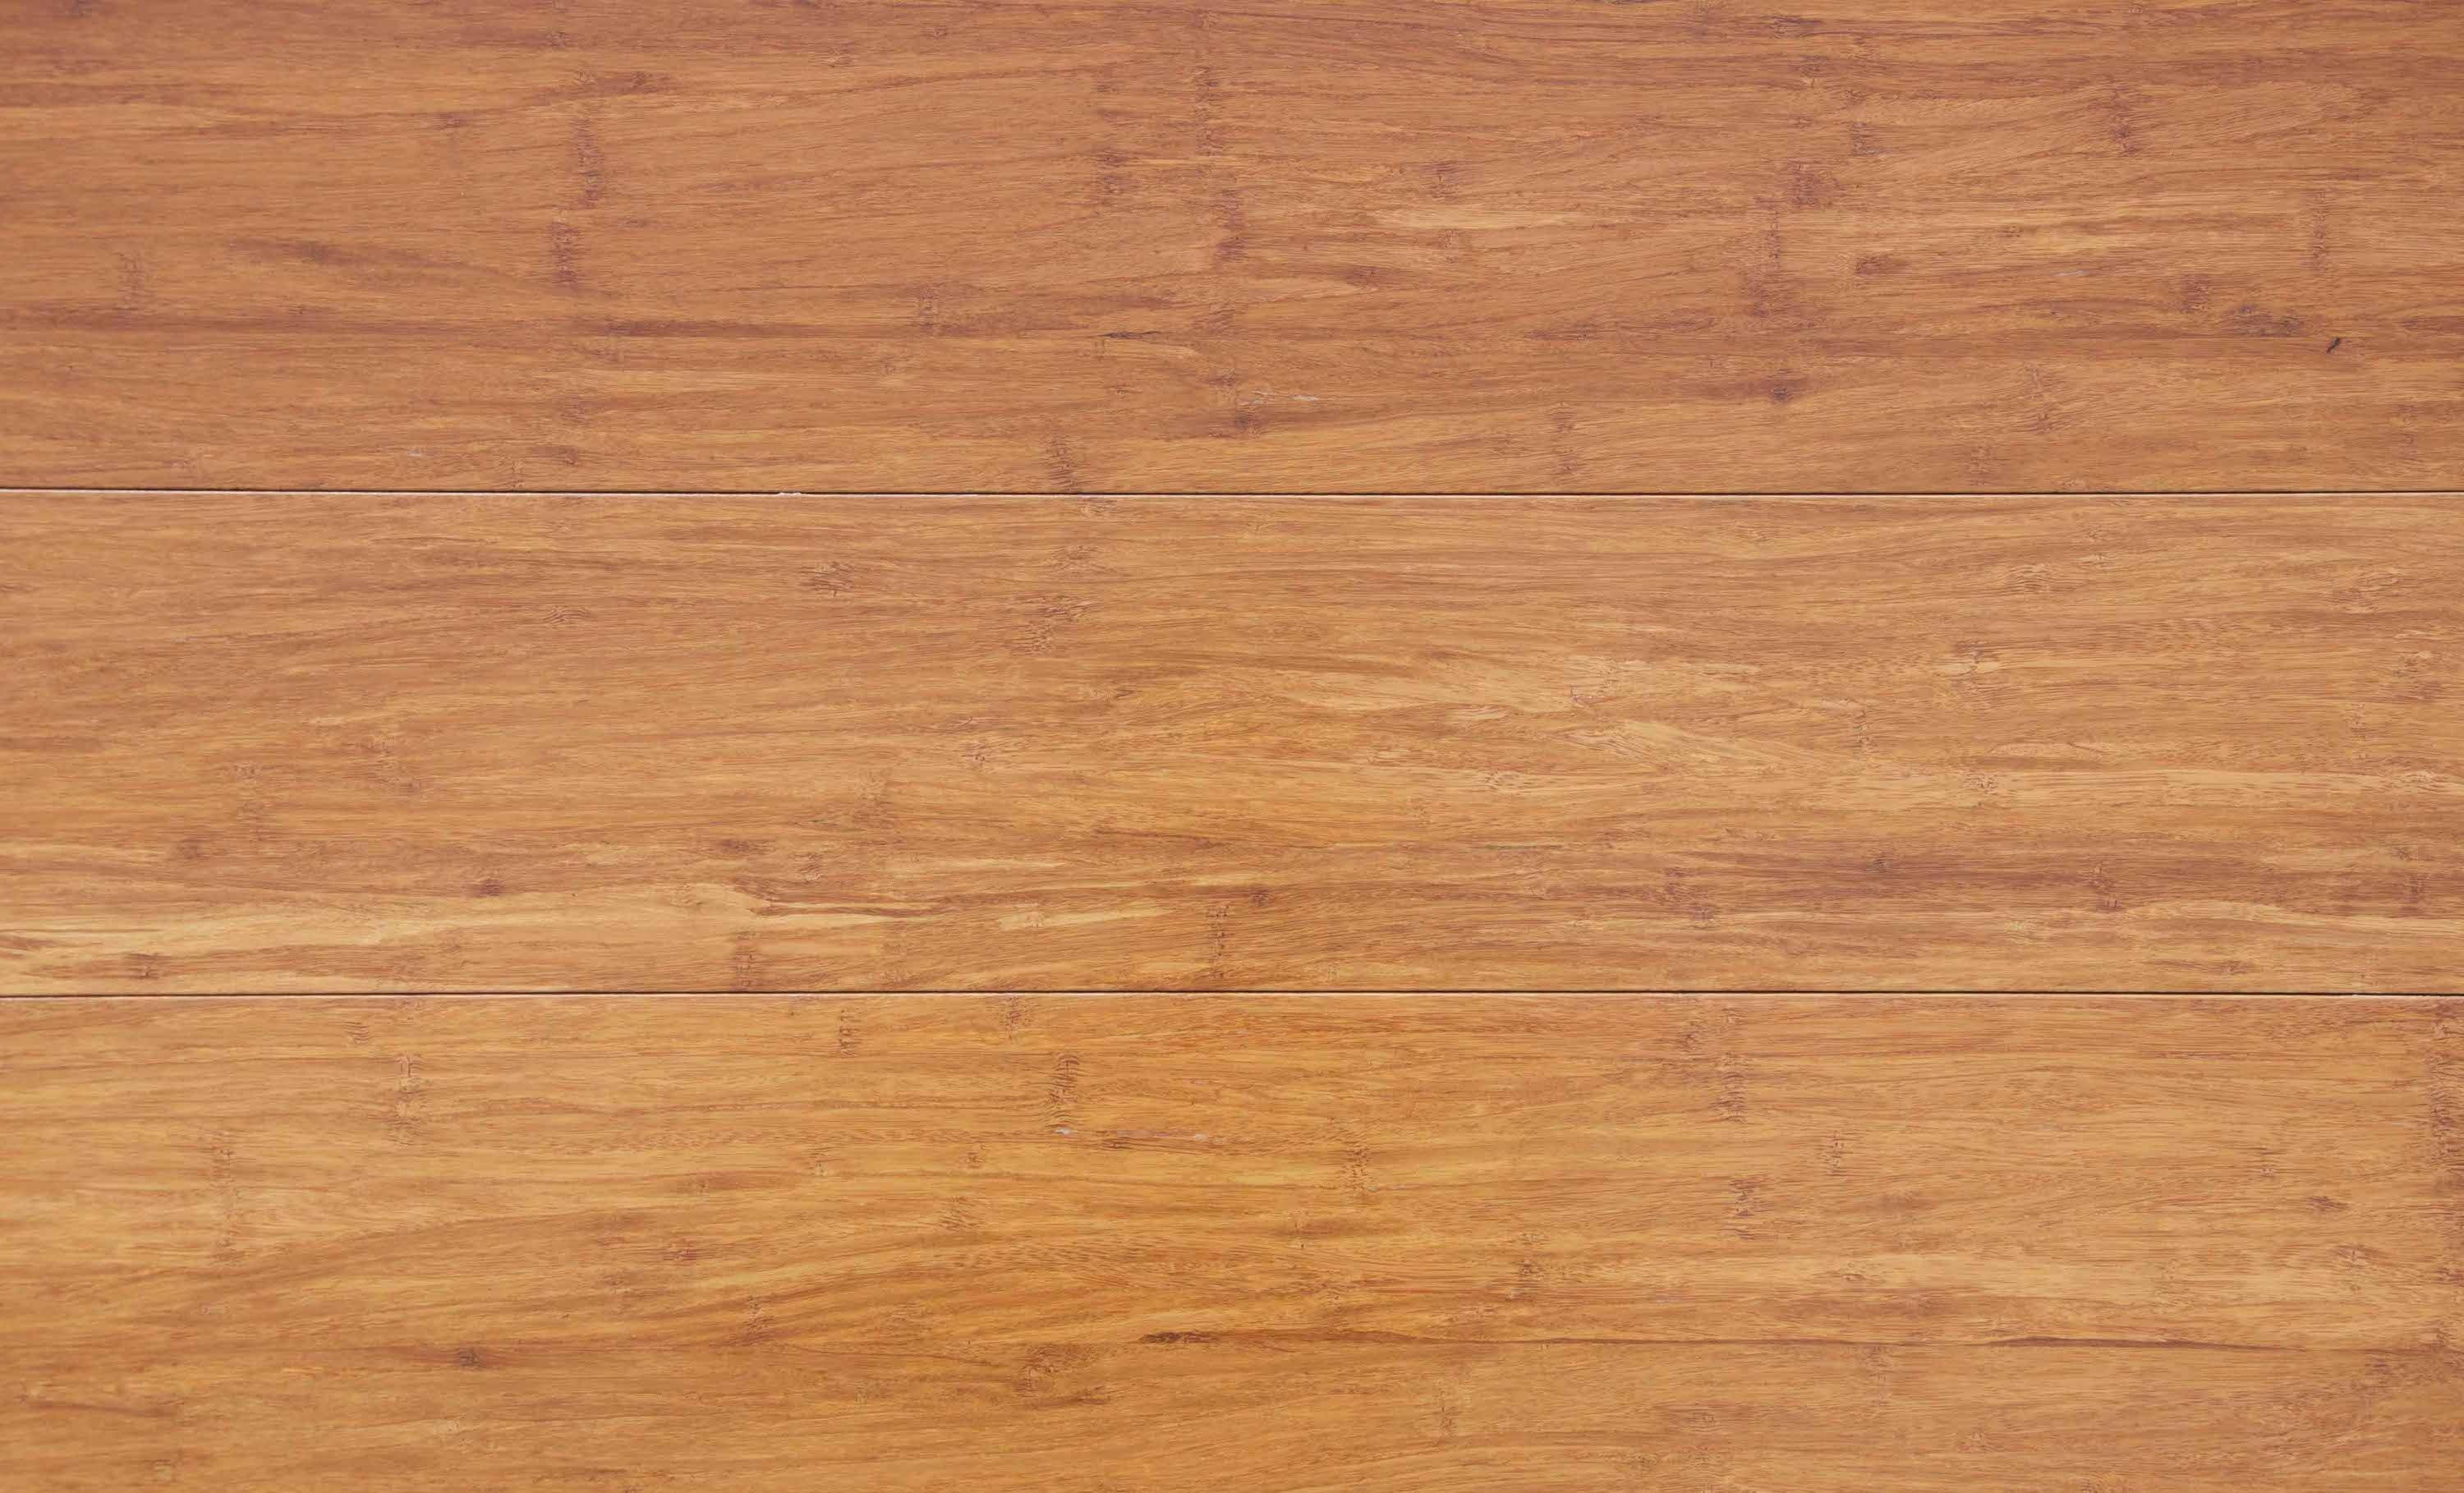 vinyl flooring vs hardwood of 37 best unfinished bamboo floor stock flooring design ideas within bamboo laminate flooring rhino style moyen wood effect vinyl floor